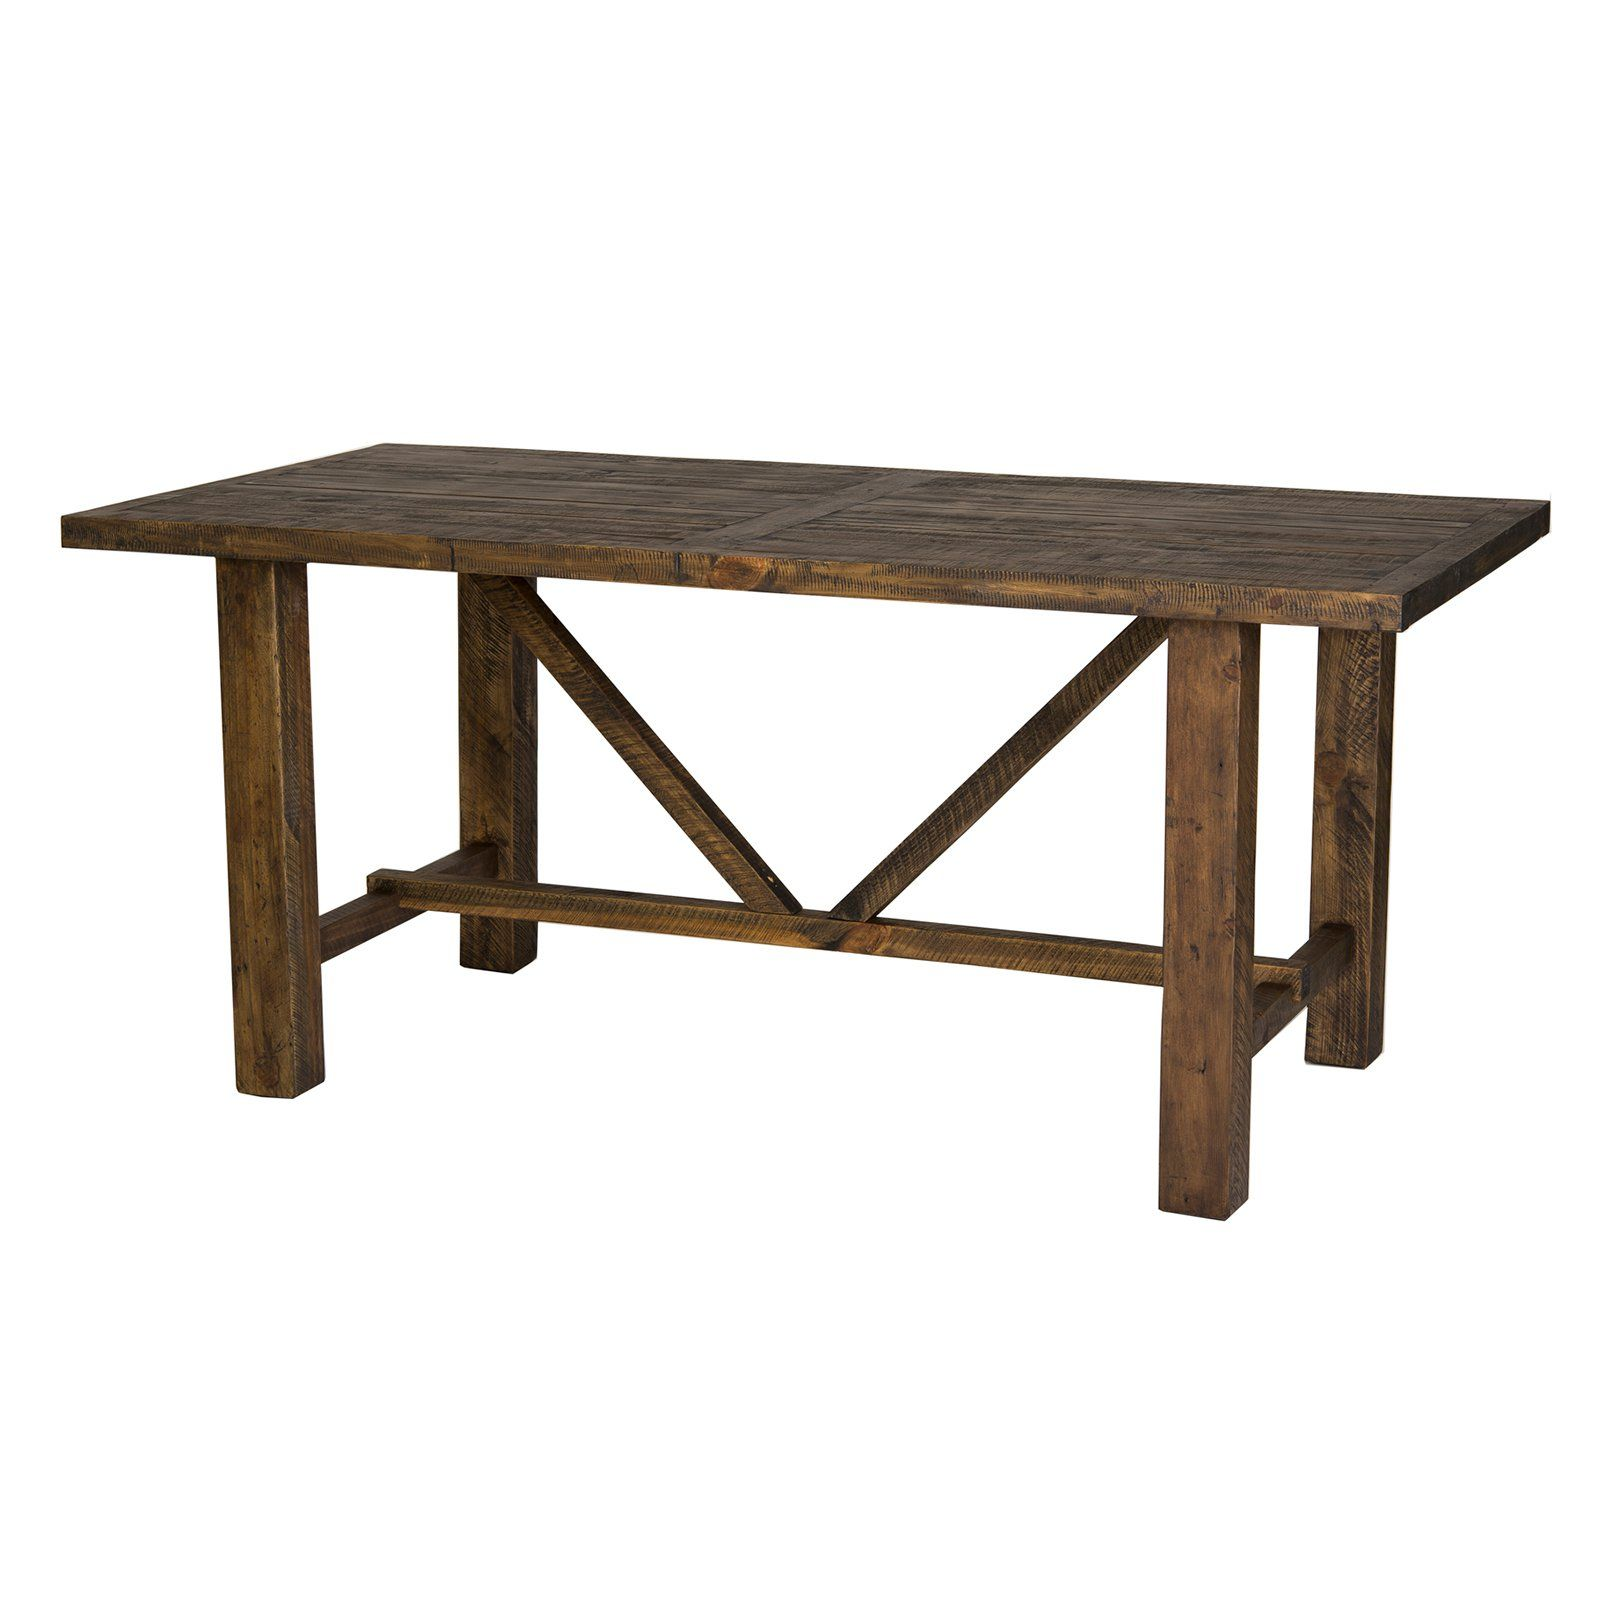 Stupendous Farmhouse Trestle Dining Table From Hayneedle Com For Dailytribune Chair Design For Home Dailytribuneorg